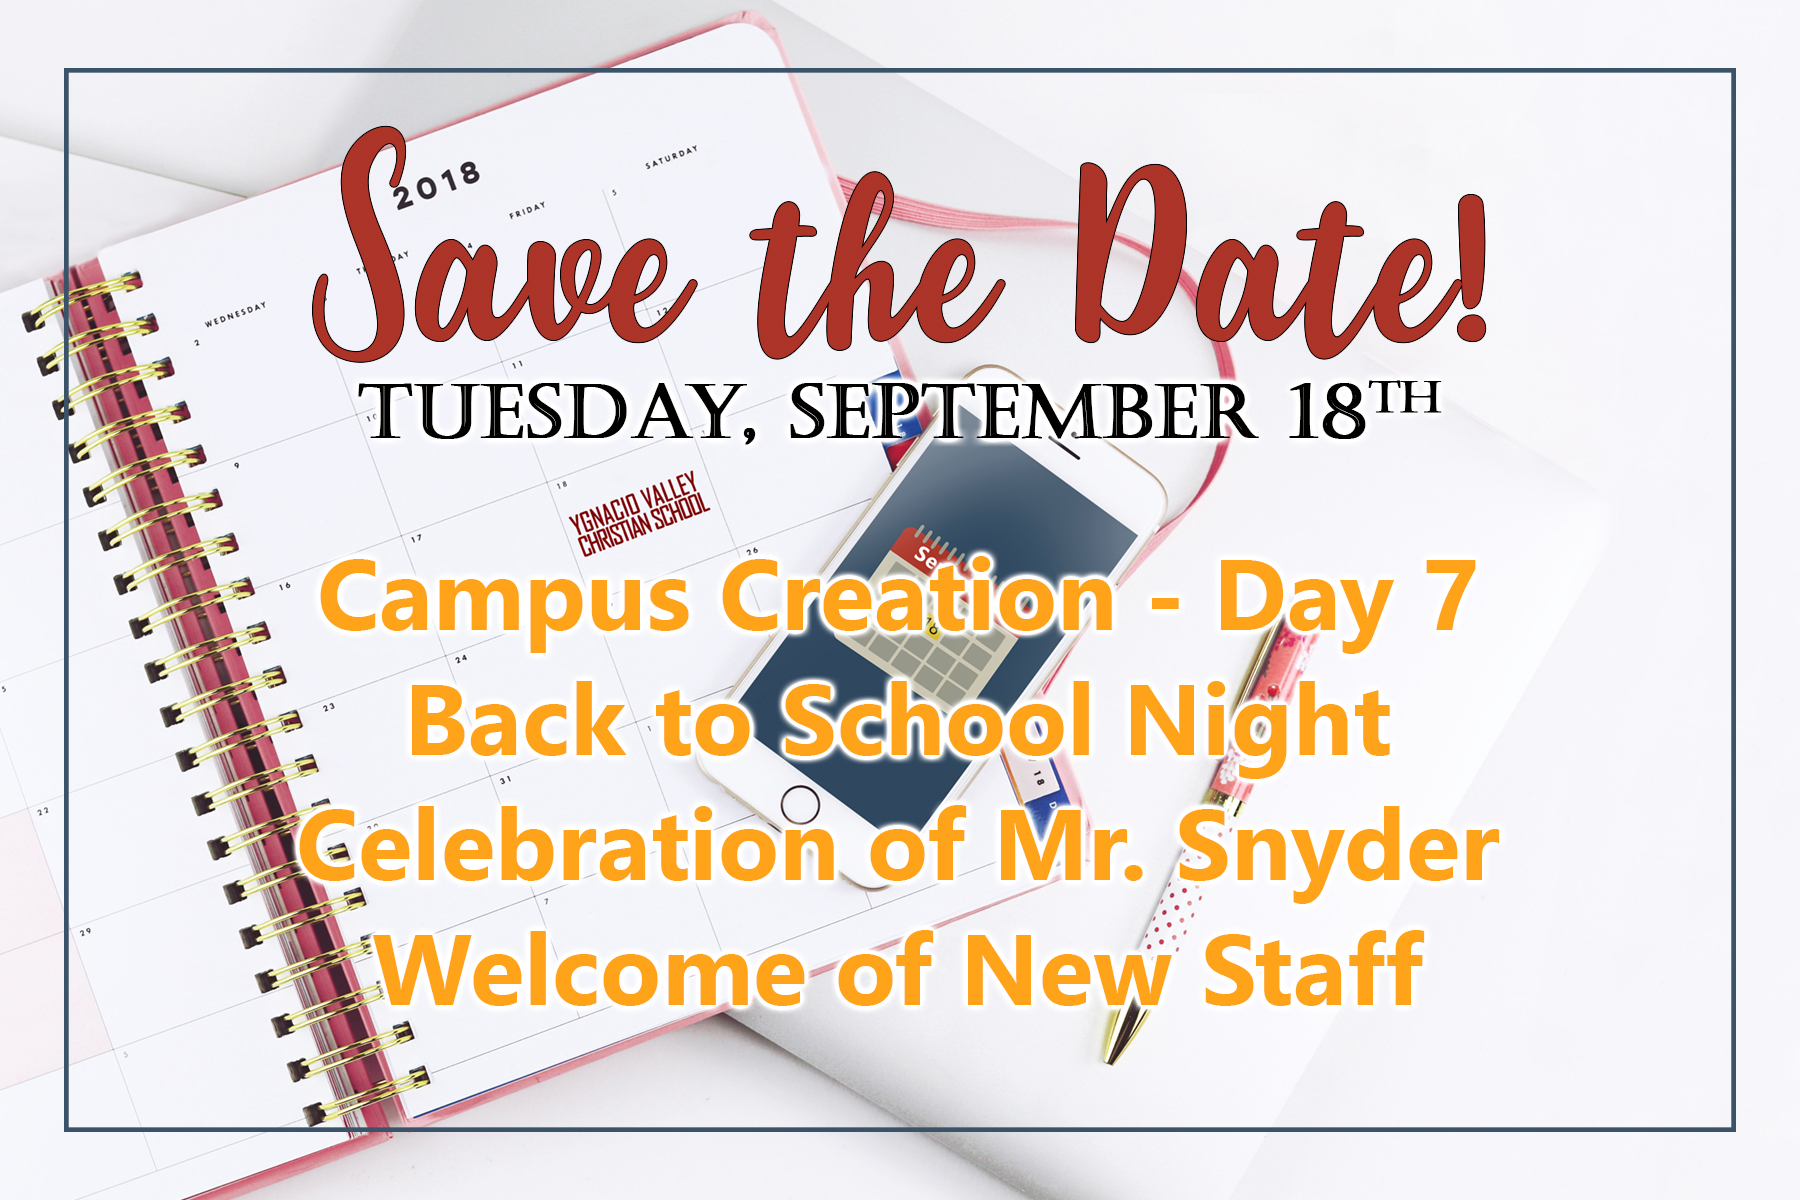 Save-the-date_Sept-18.jpg